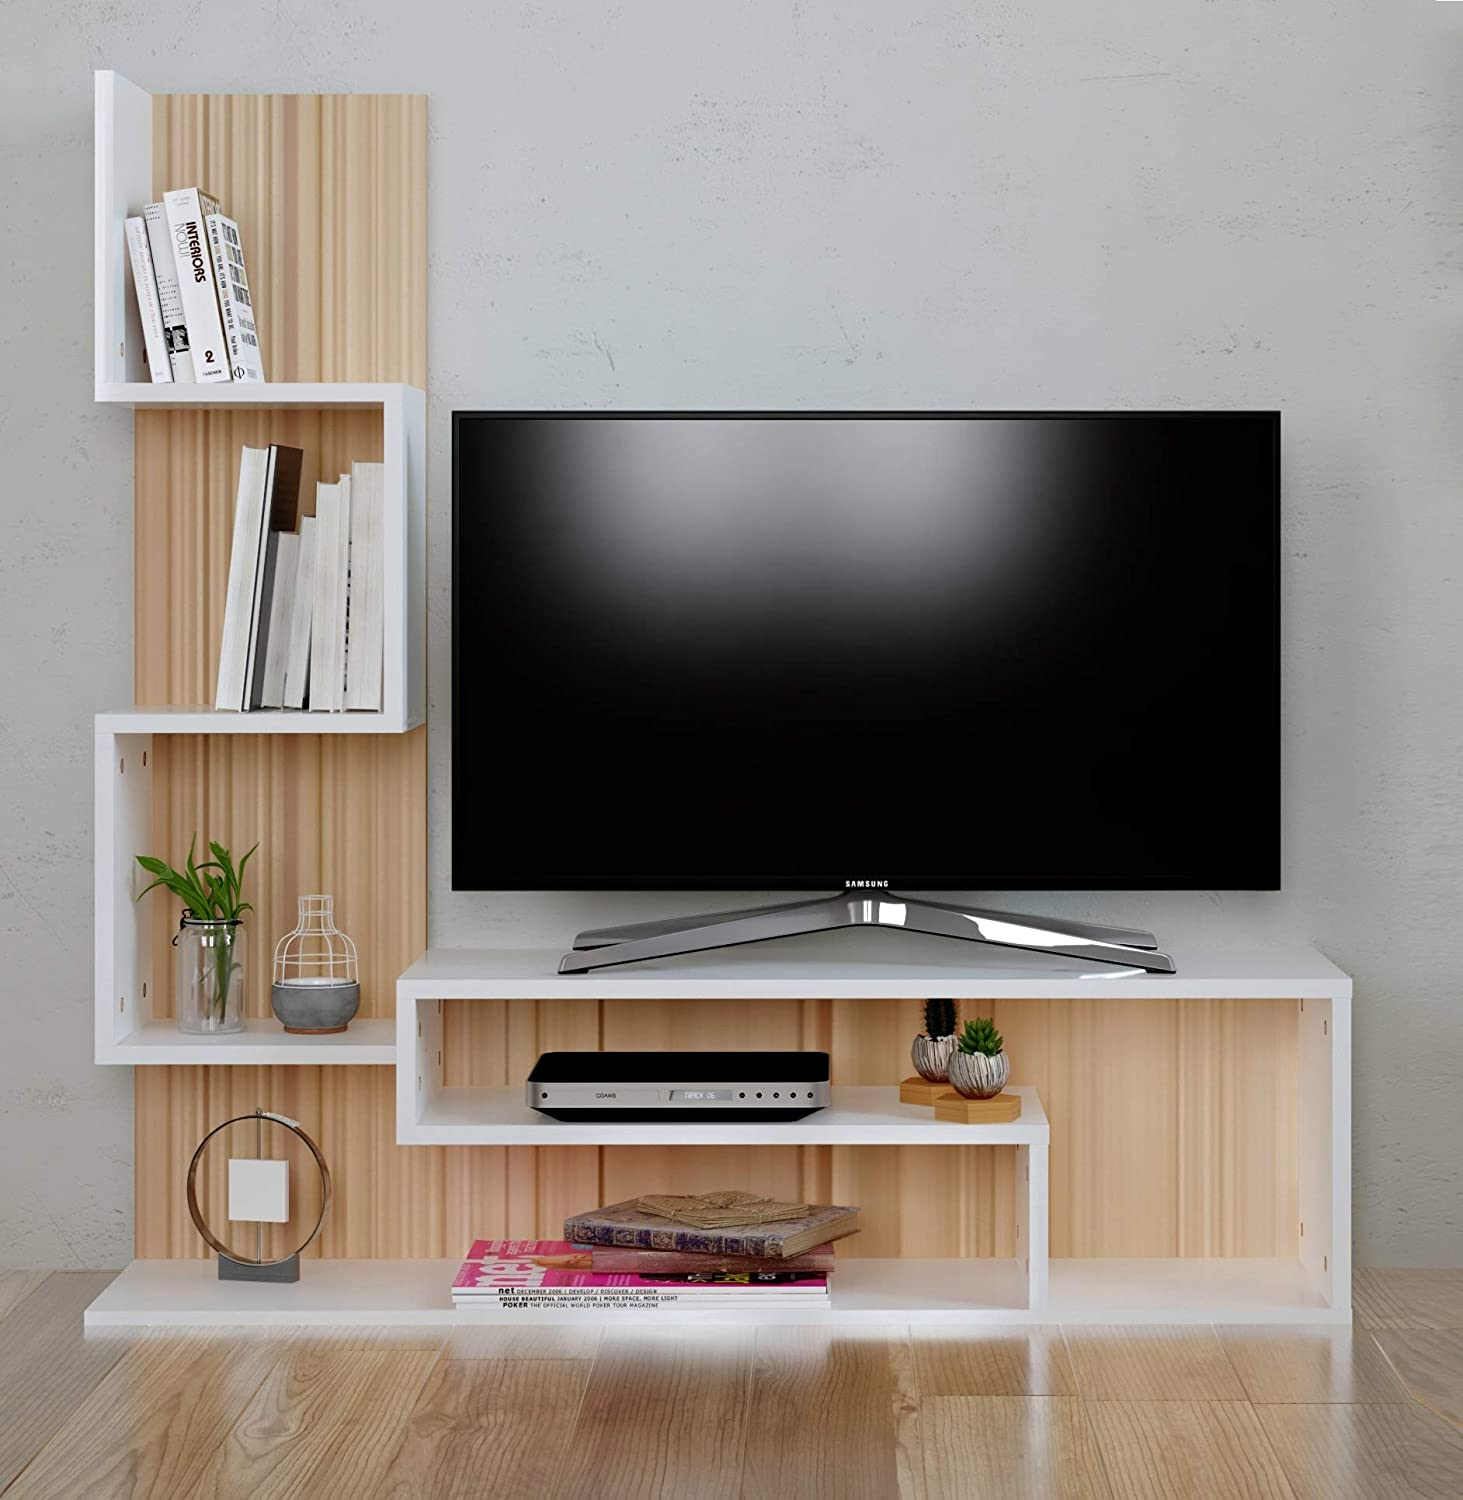 Homidea Mimosa Wall Unit Tv Lowboard Tv Stand Living Room Furniture Set In Modern Design Sonoma White Amazon Co Uk Kitchen Home